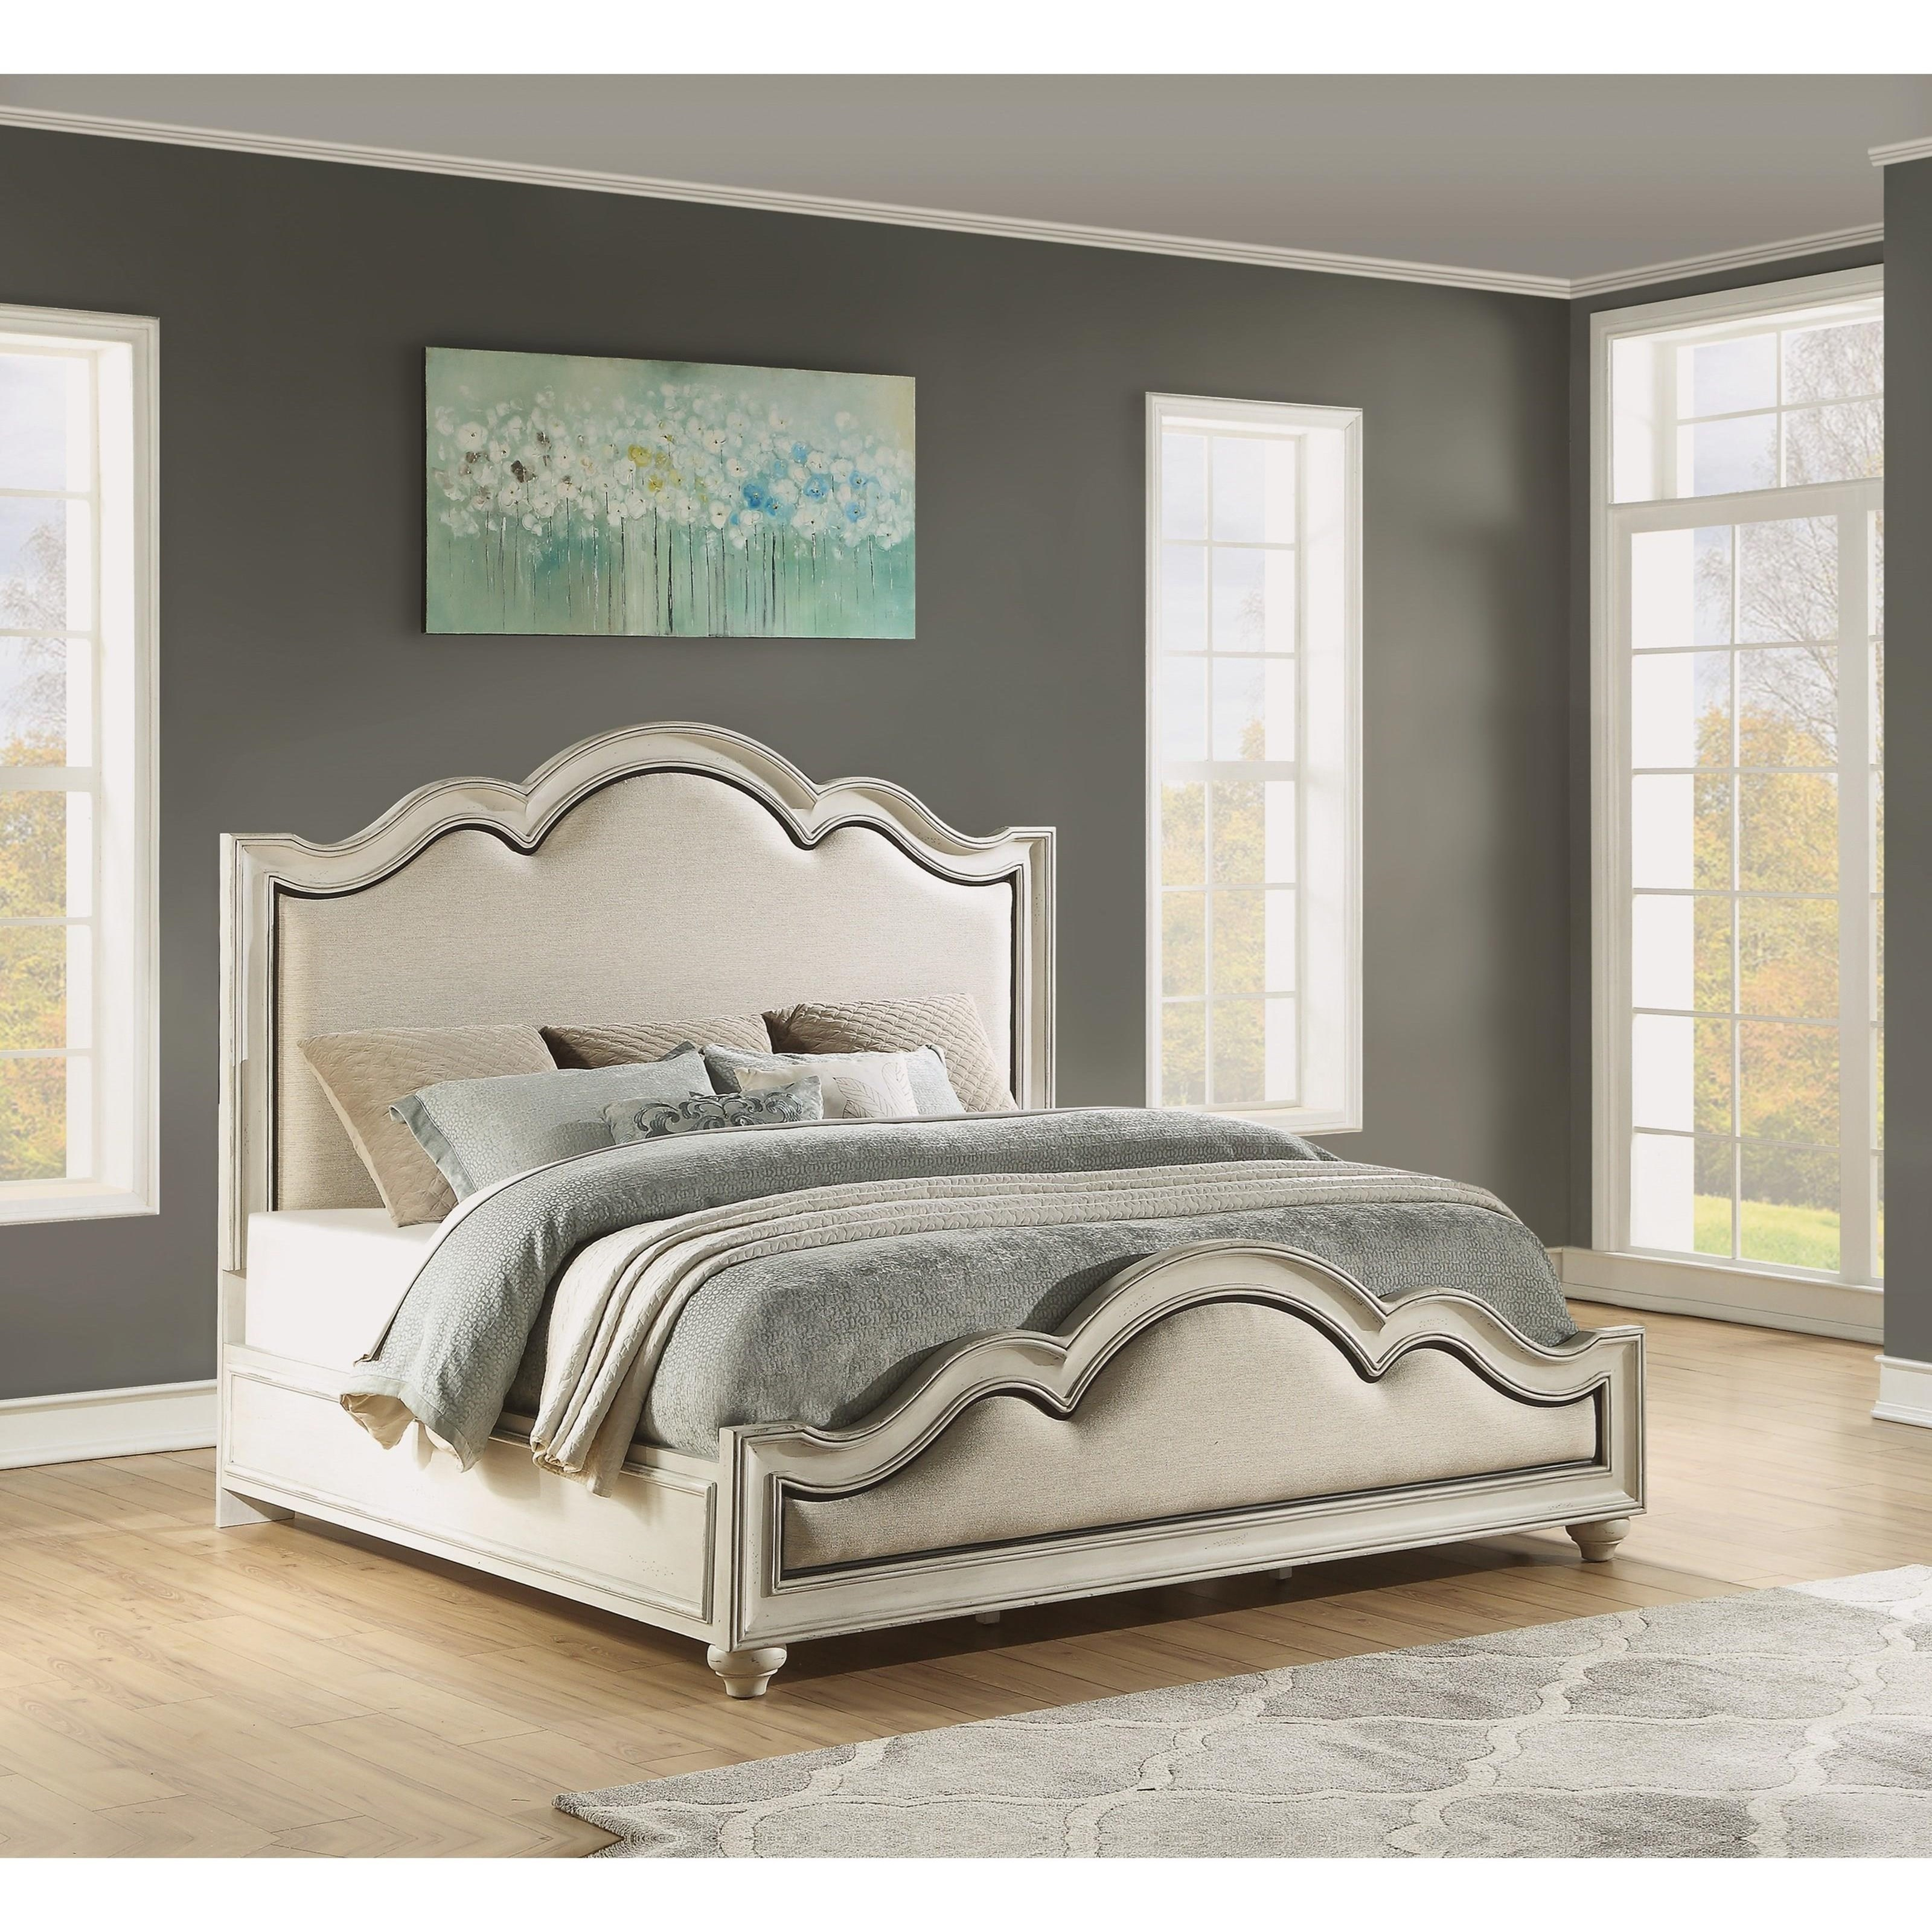 Harmony King Upholstered Bed by Flexsteel Wynwood Collection at Northeast Factory Direct